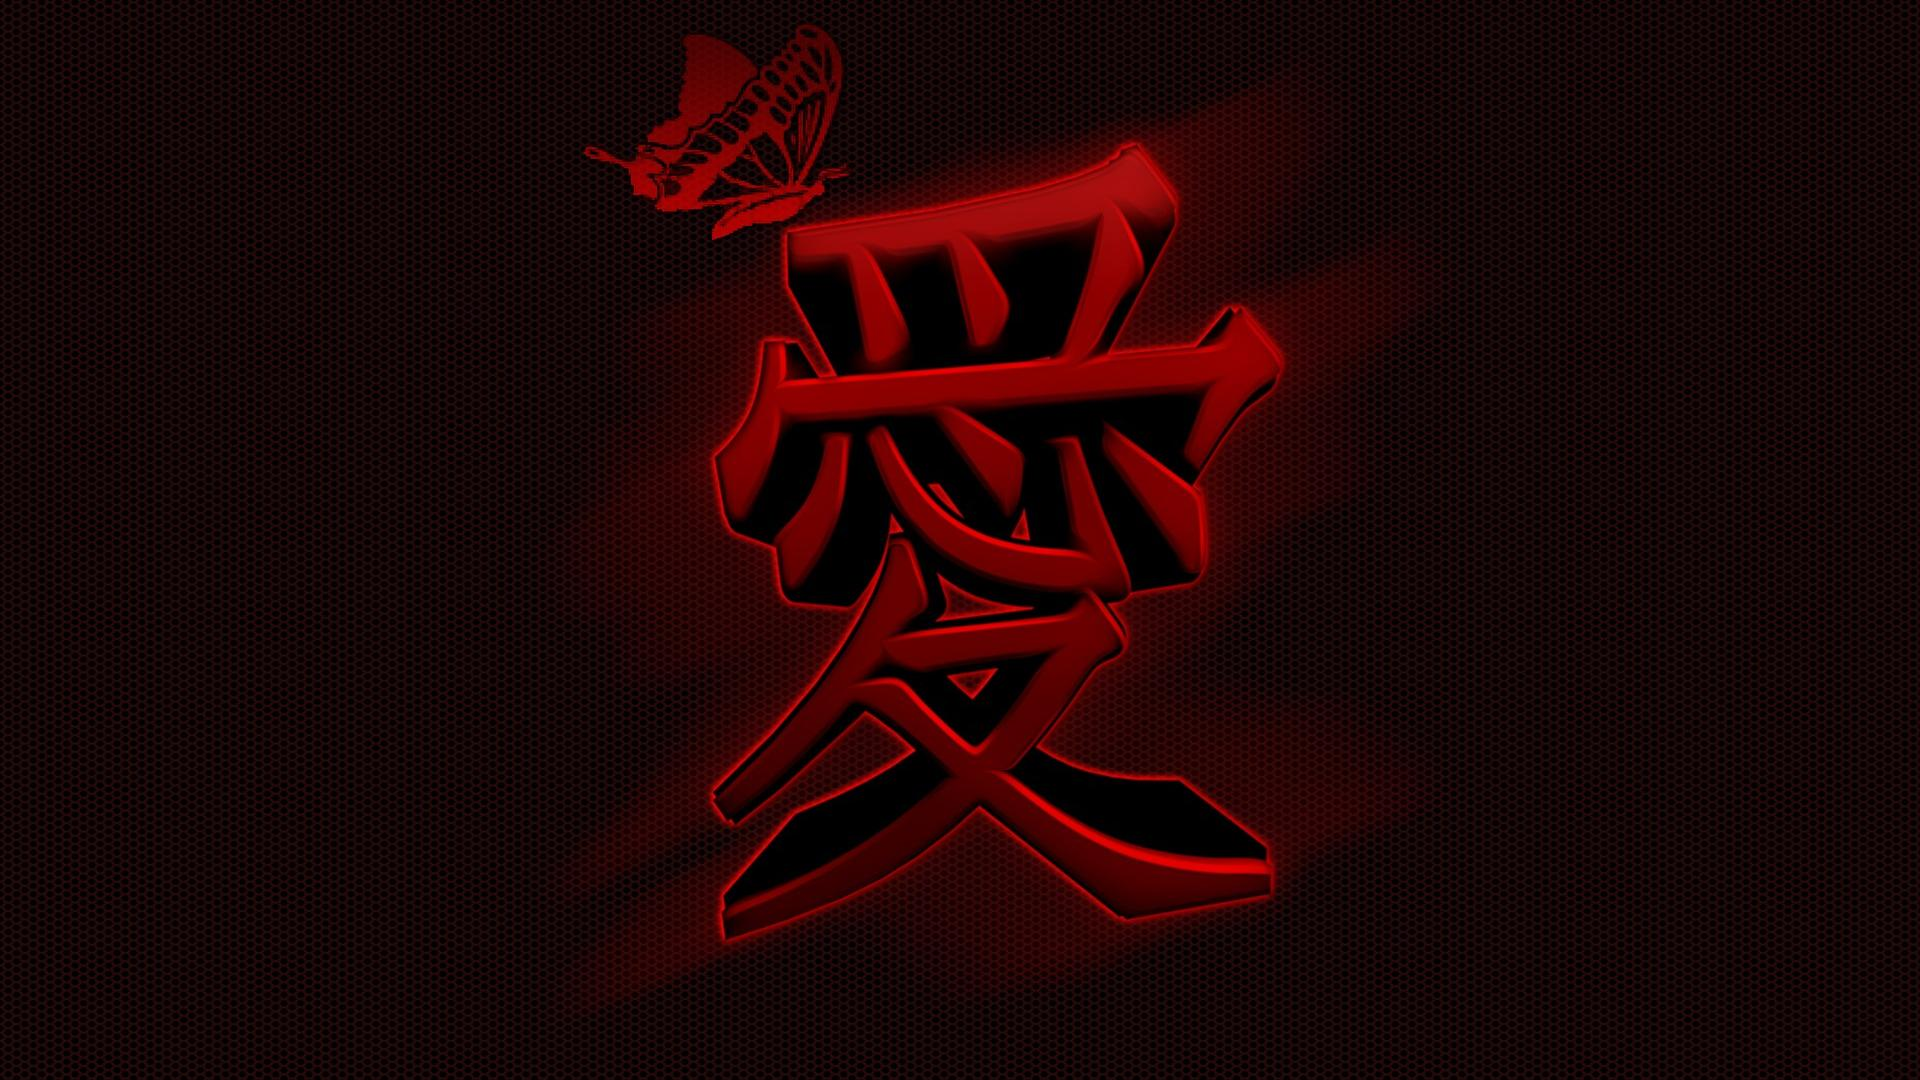 chinese Symbol Wallpaper - WallpaperSafari